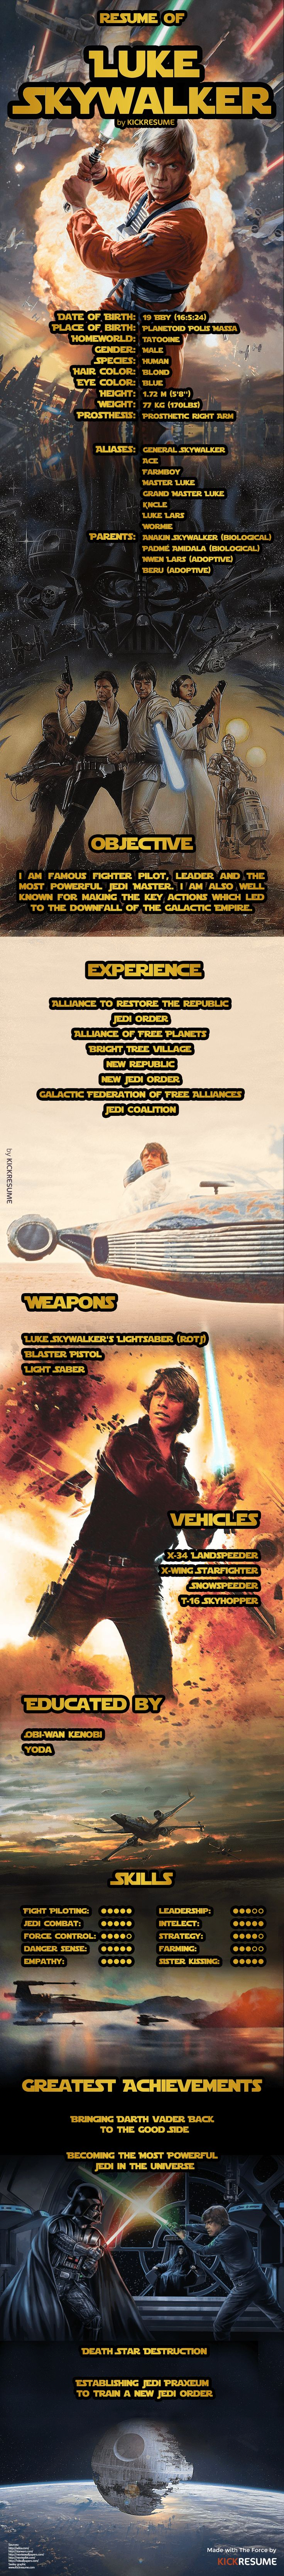 Here is The Resume of Luke Skywalker